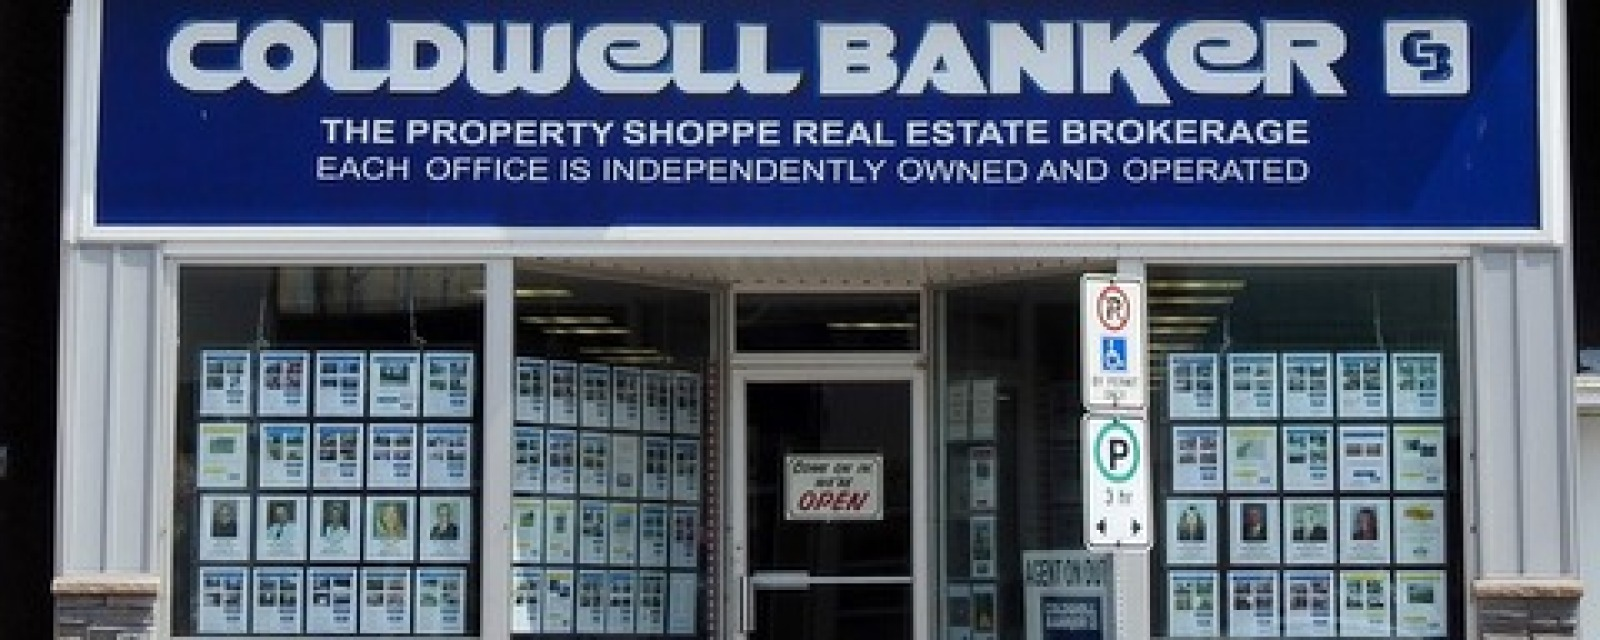 Coldwell Banker The Property Shoppe